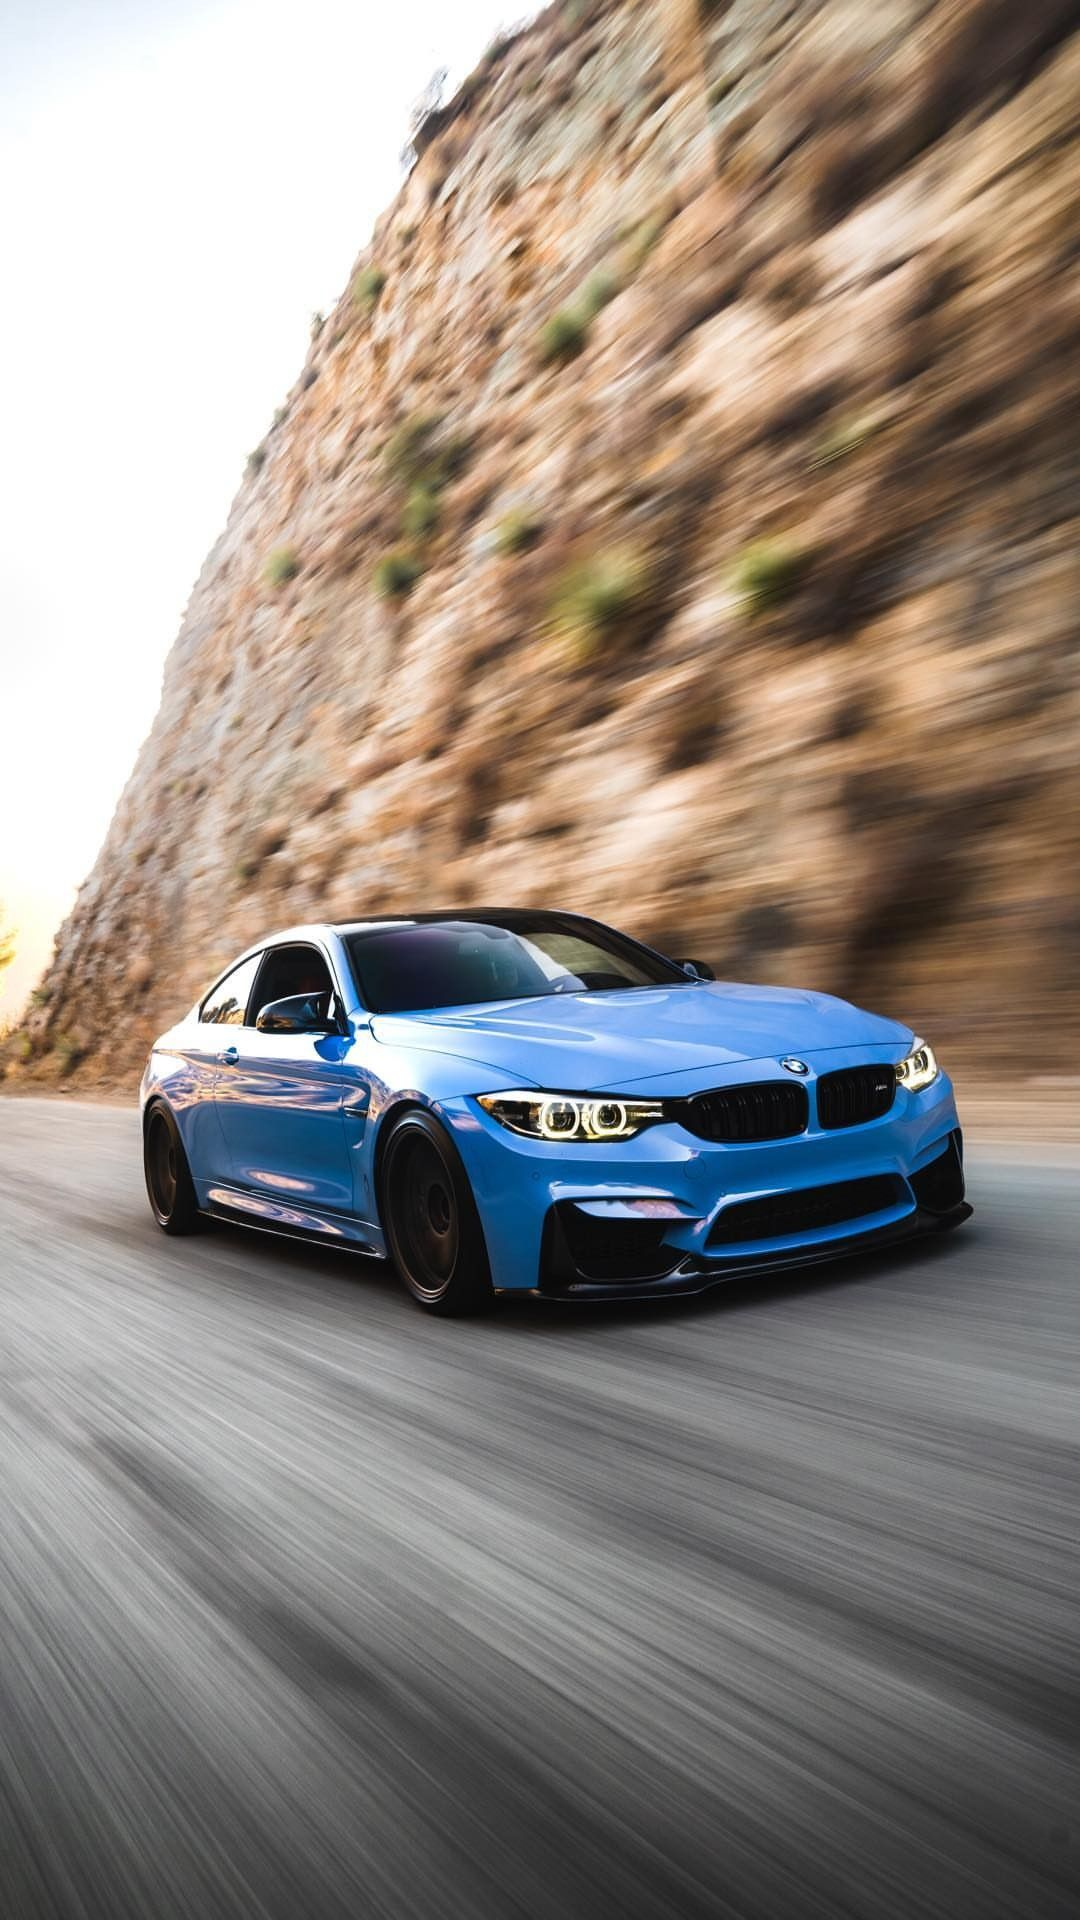 Bmw Cars With Images Bmw Cars Car Wallpapers Bmw